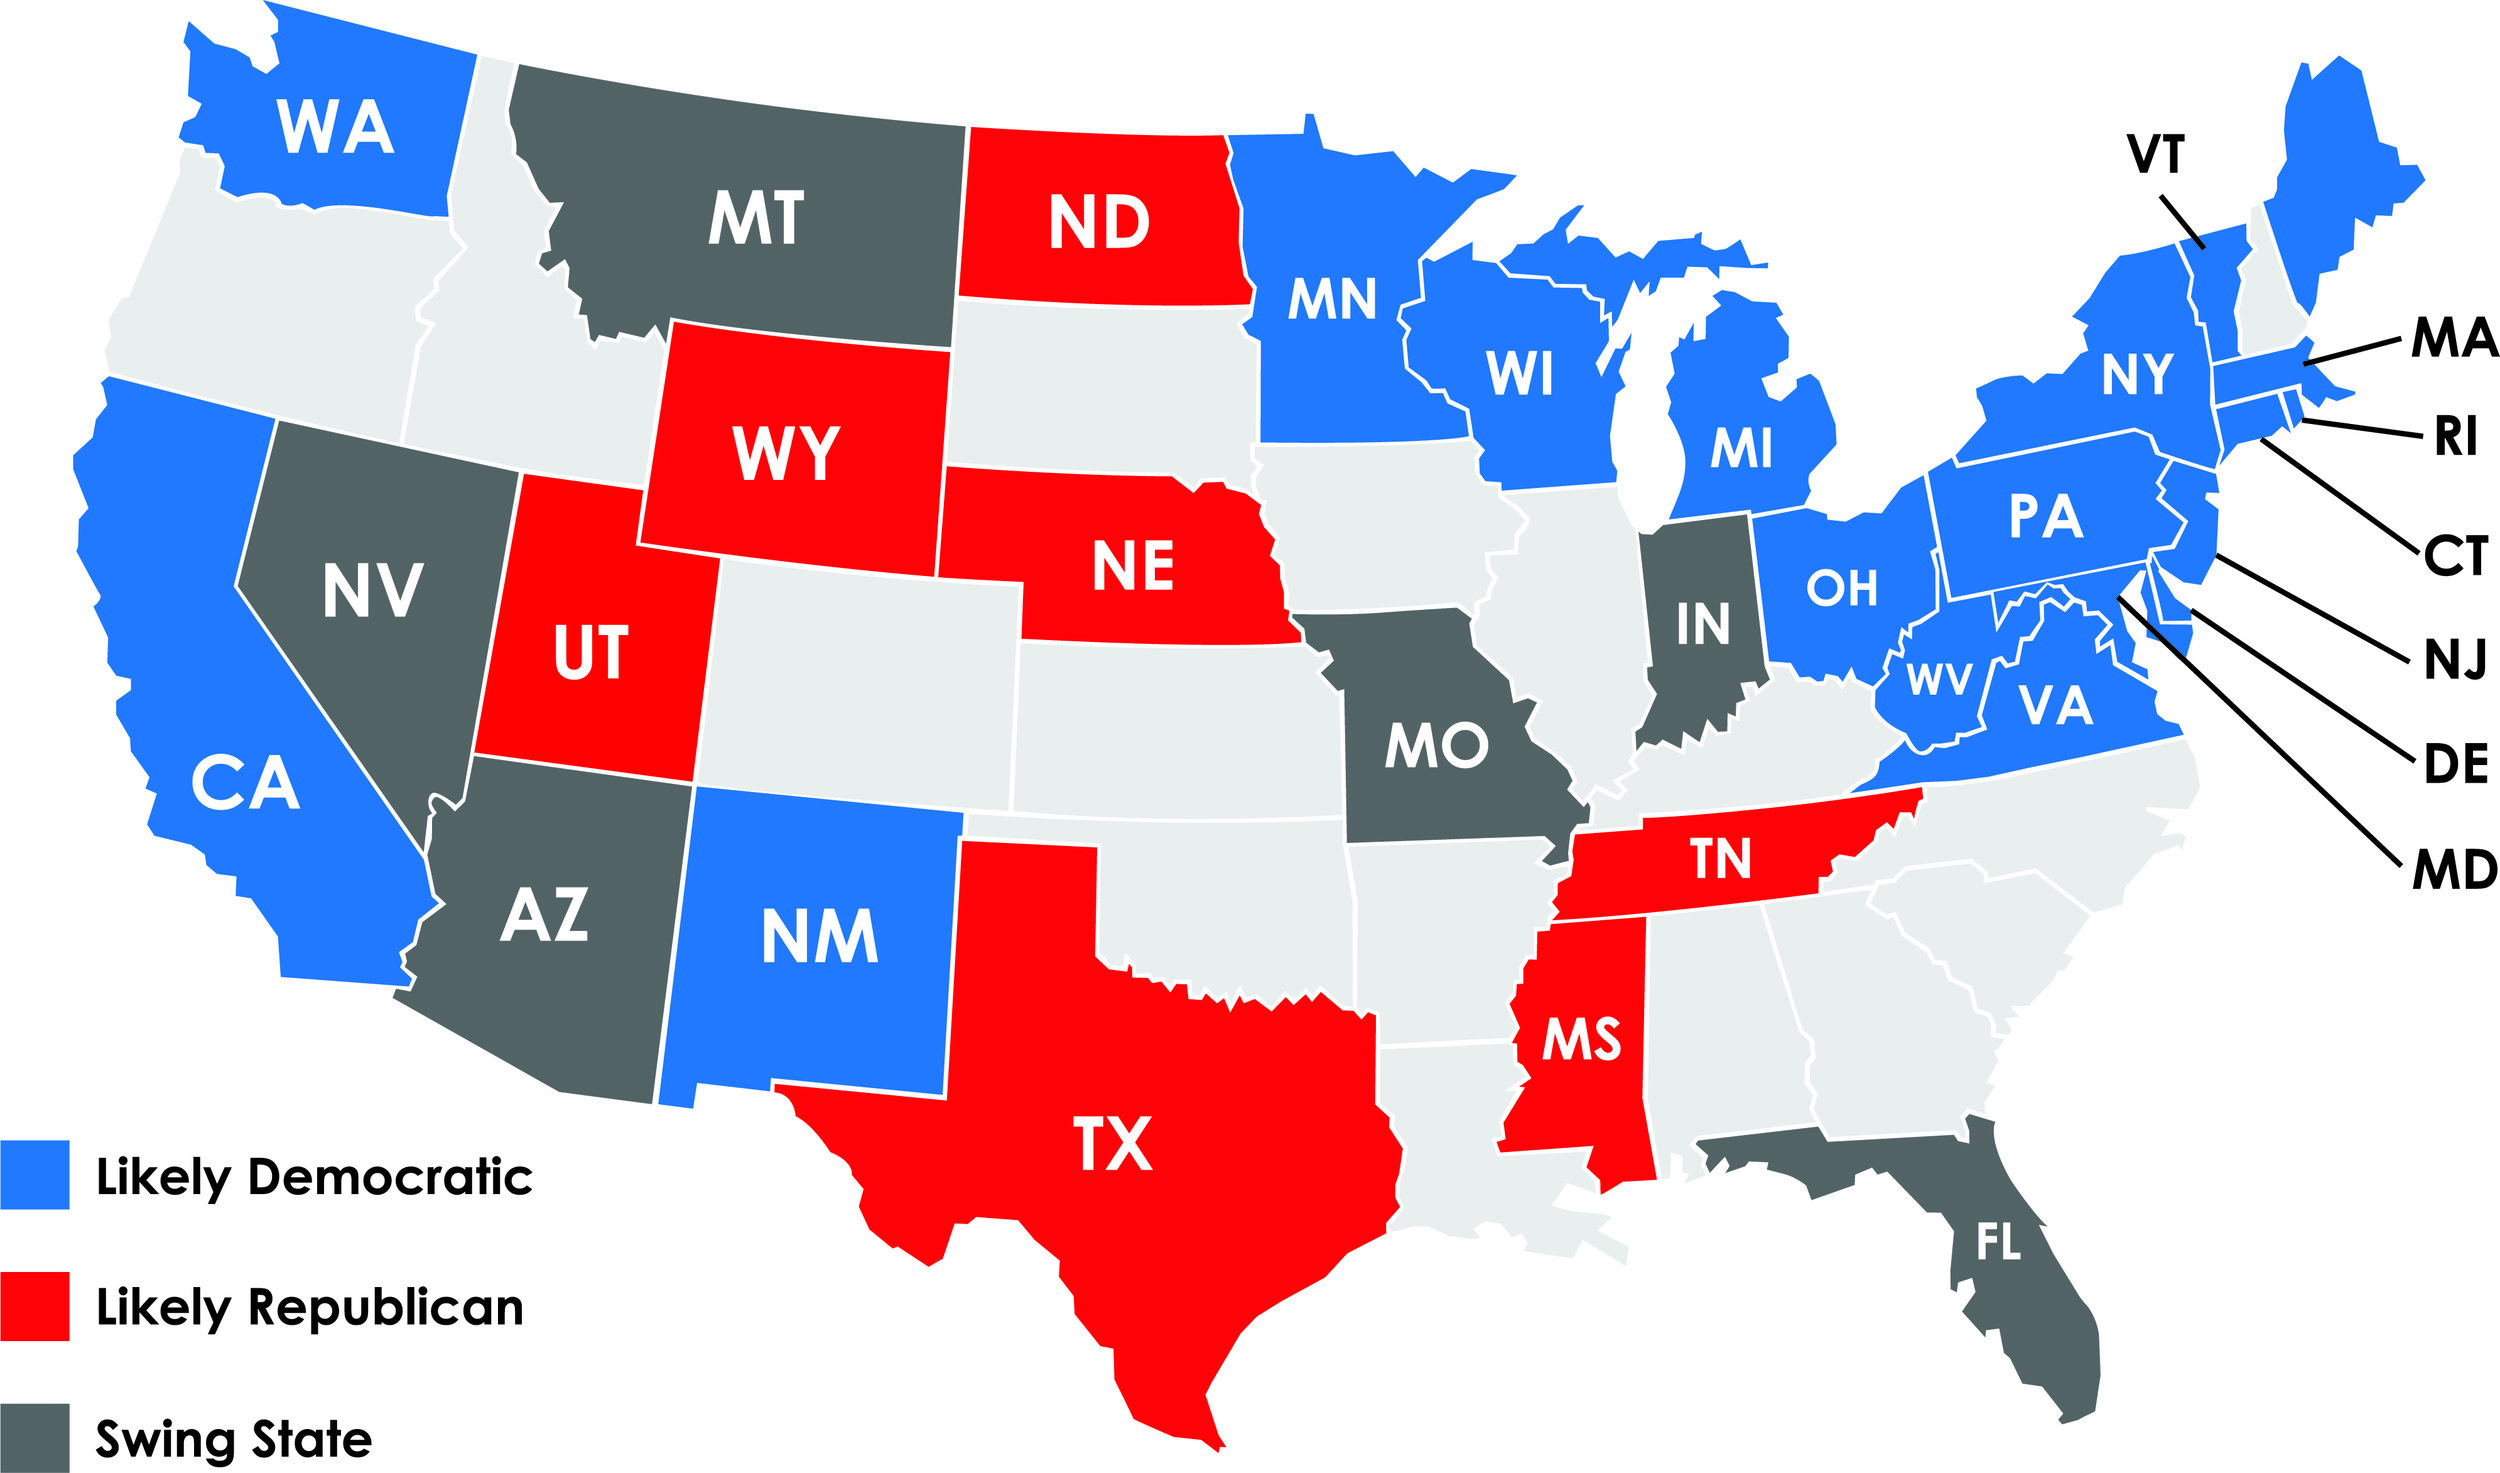 Political Parties By State Map.Political Parties Battle For Key Swing States The Quaker Campus